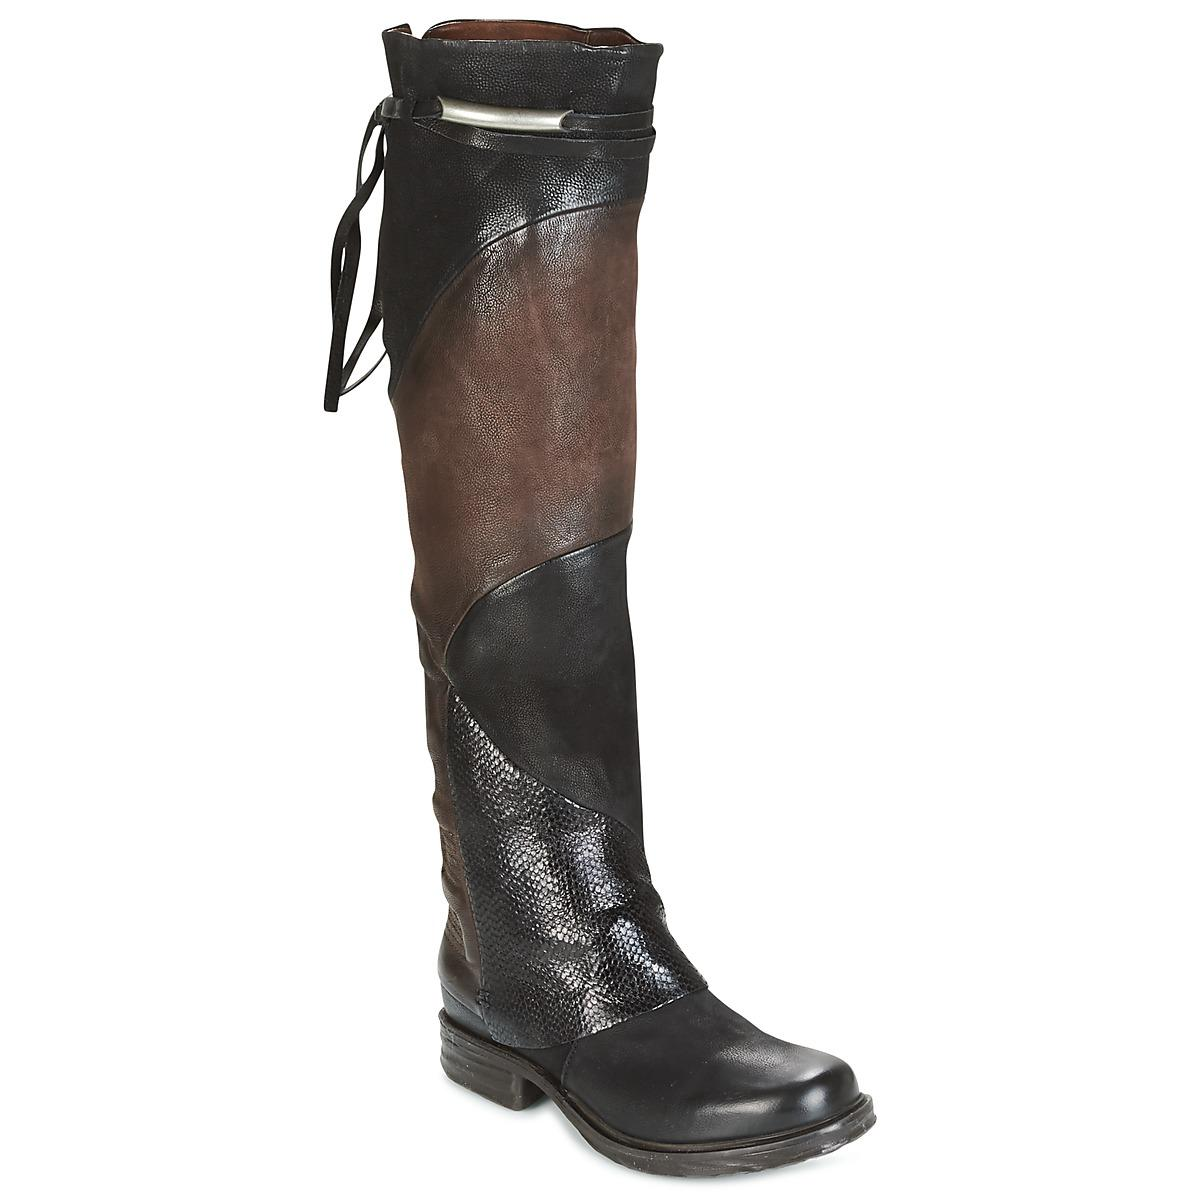 Airstep / A.S.98 SAINT EC PATCH women's High Boots in Explore Sale Online View zyk7u7GhOH